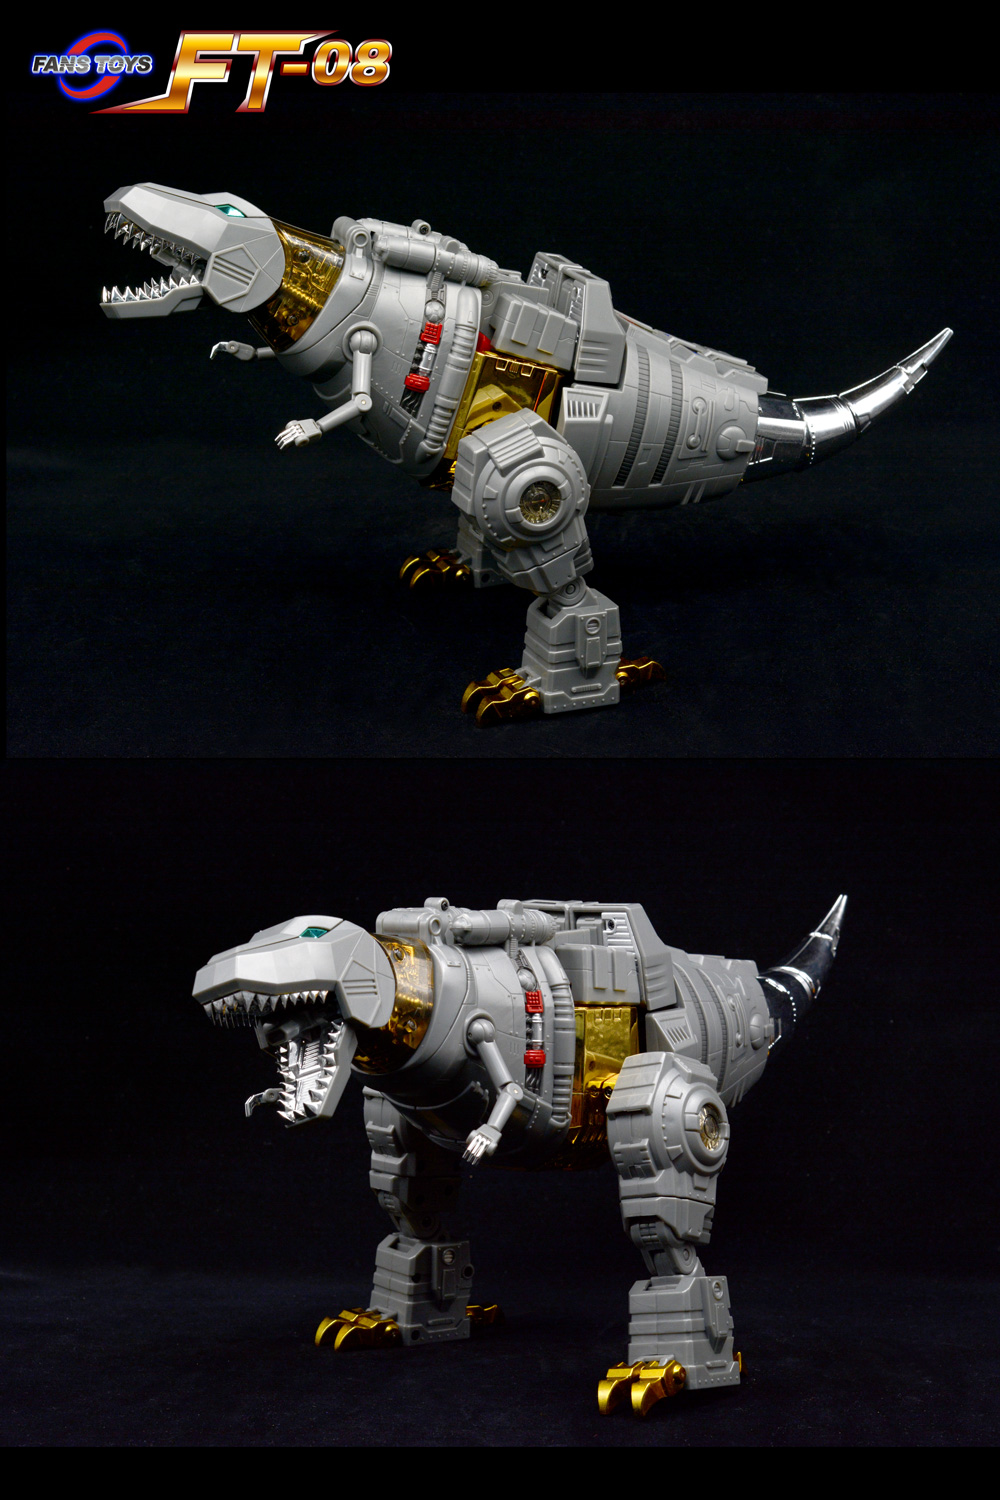 Fans Toys FT-08 Grinder Iron Dibots No.5 G1 Dino Head Only Masterpiece Scaled